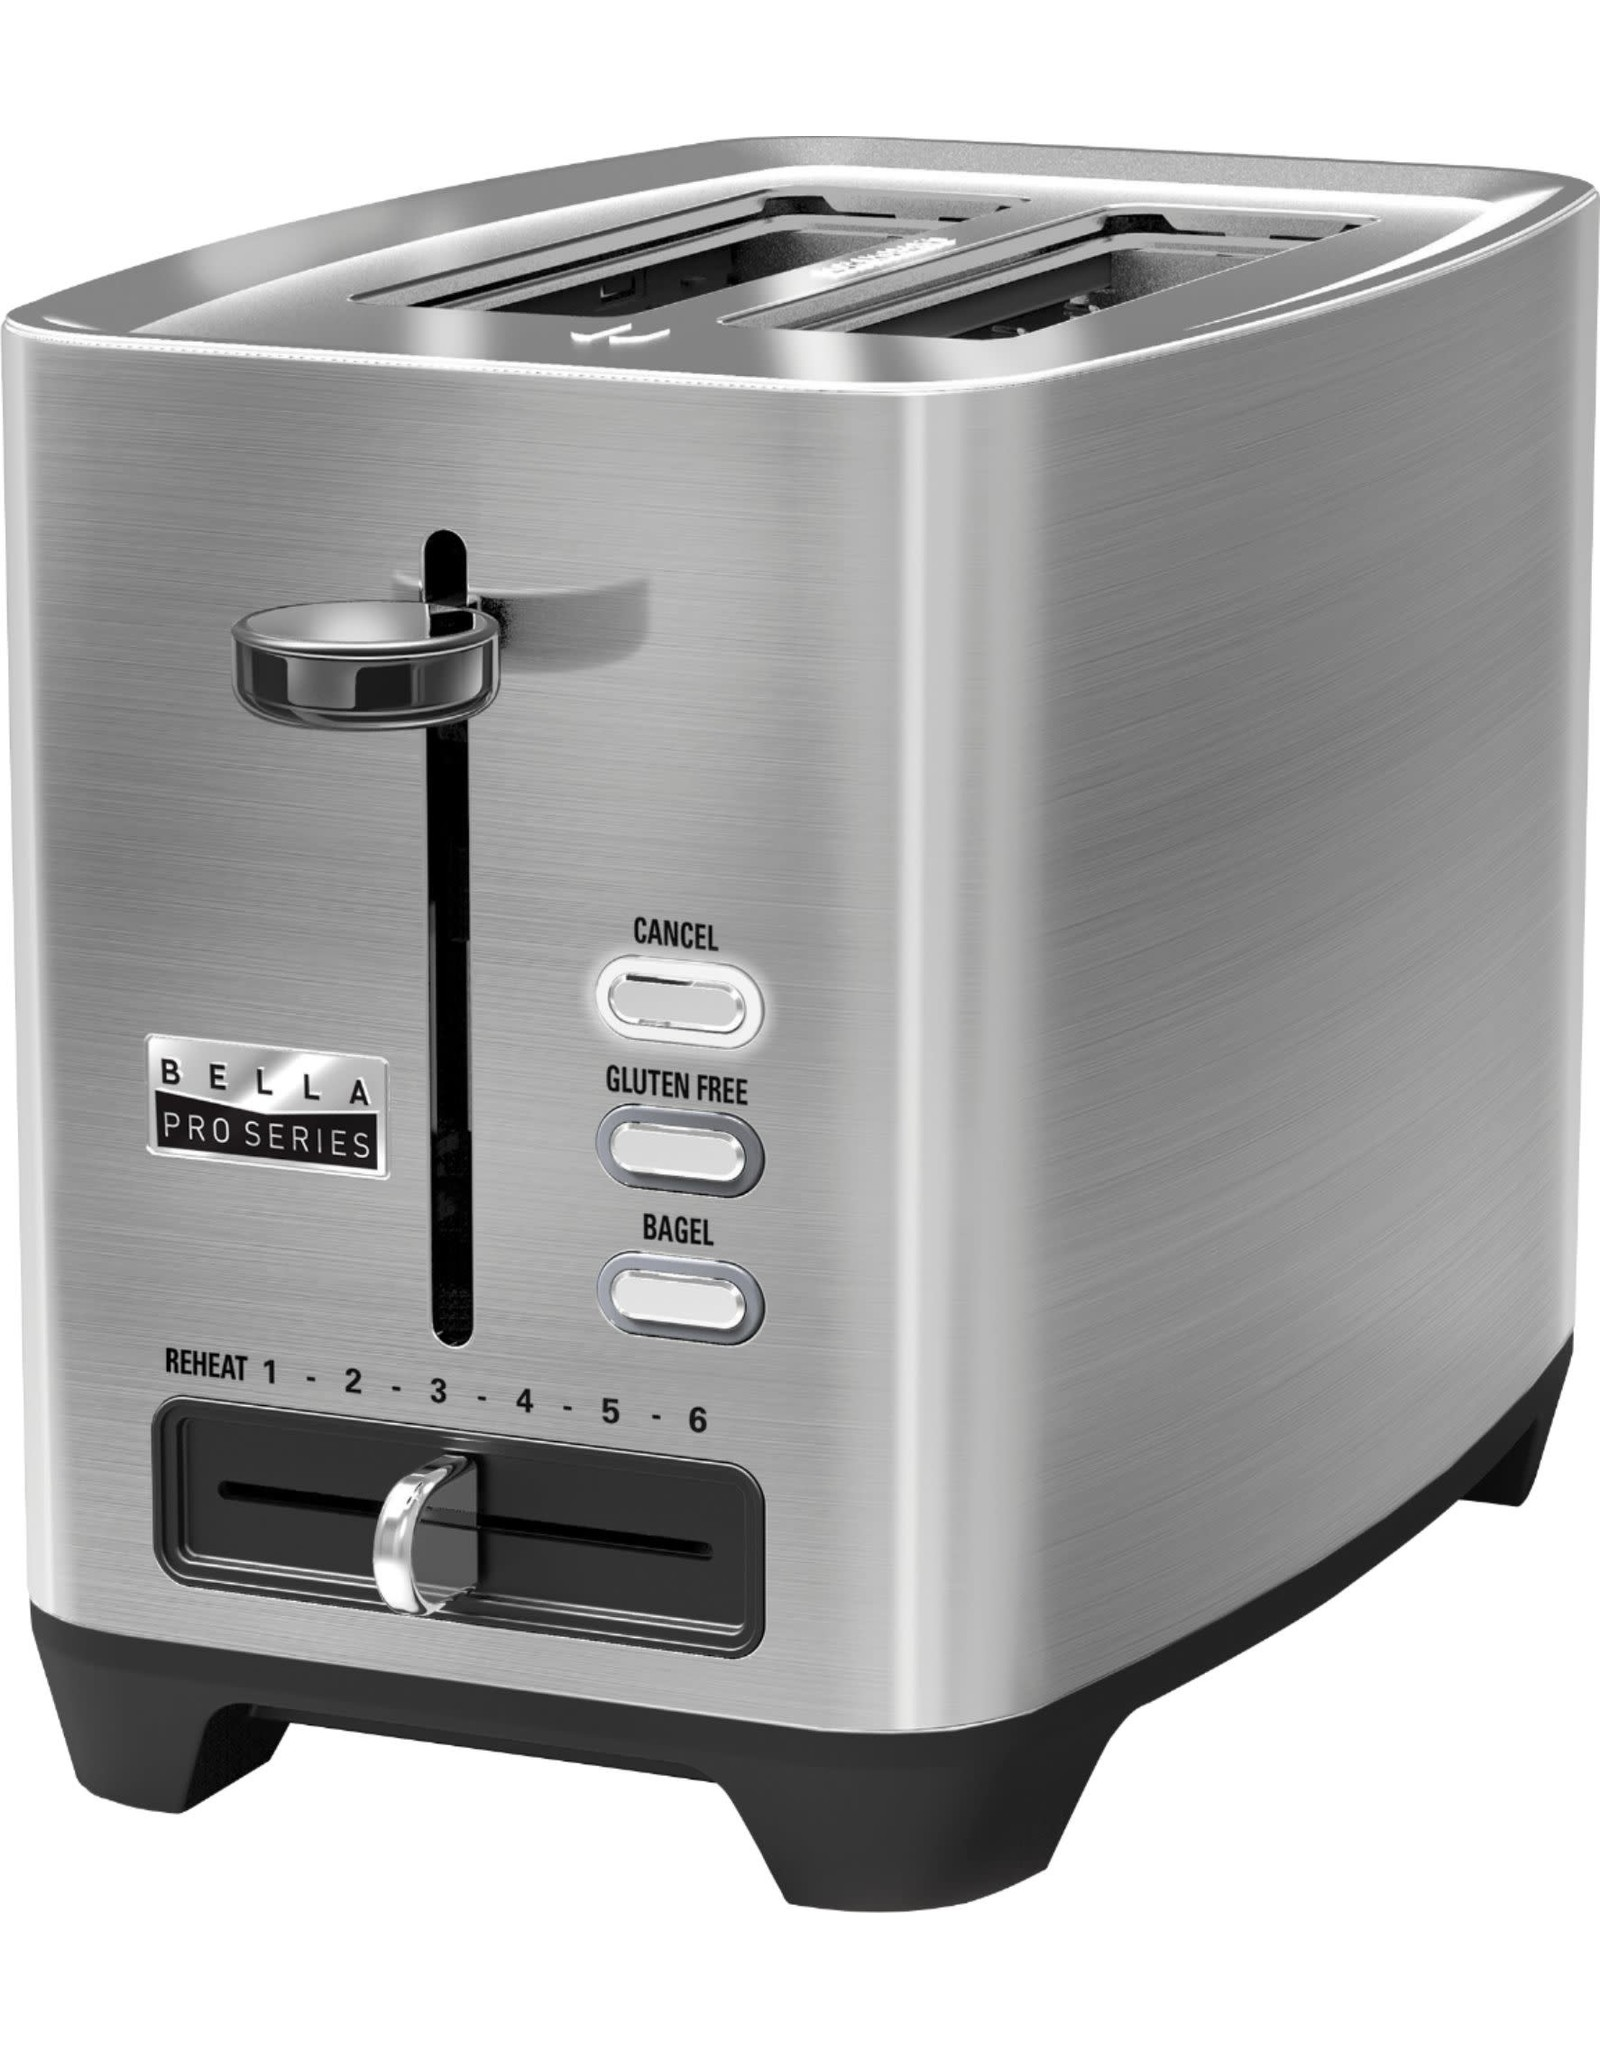 Bella pro 90075 Bella - Pro Series 2-Slice Extra-Wide-Slot Toaster - Stainless Steel